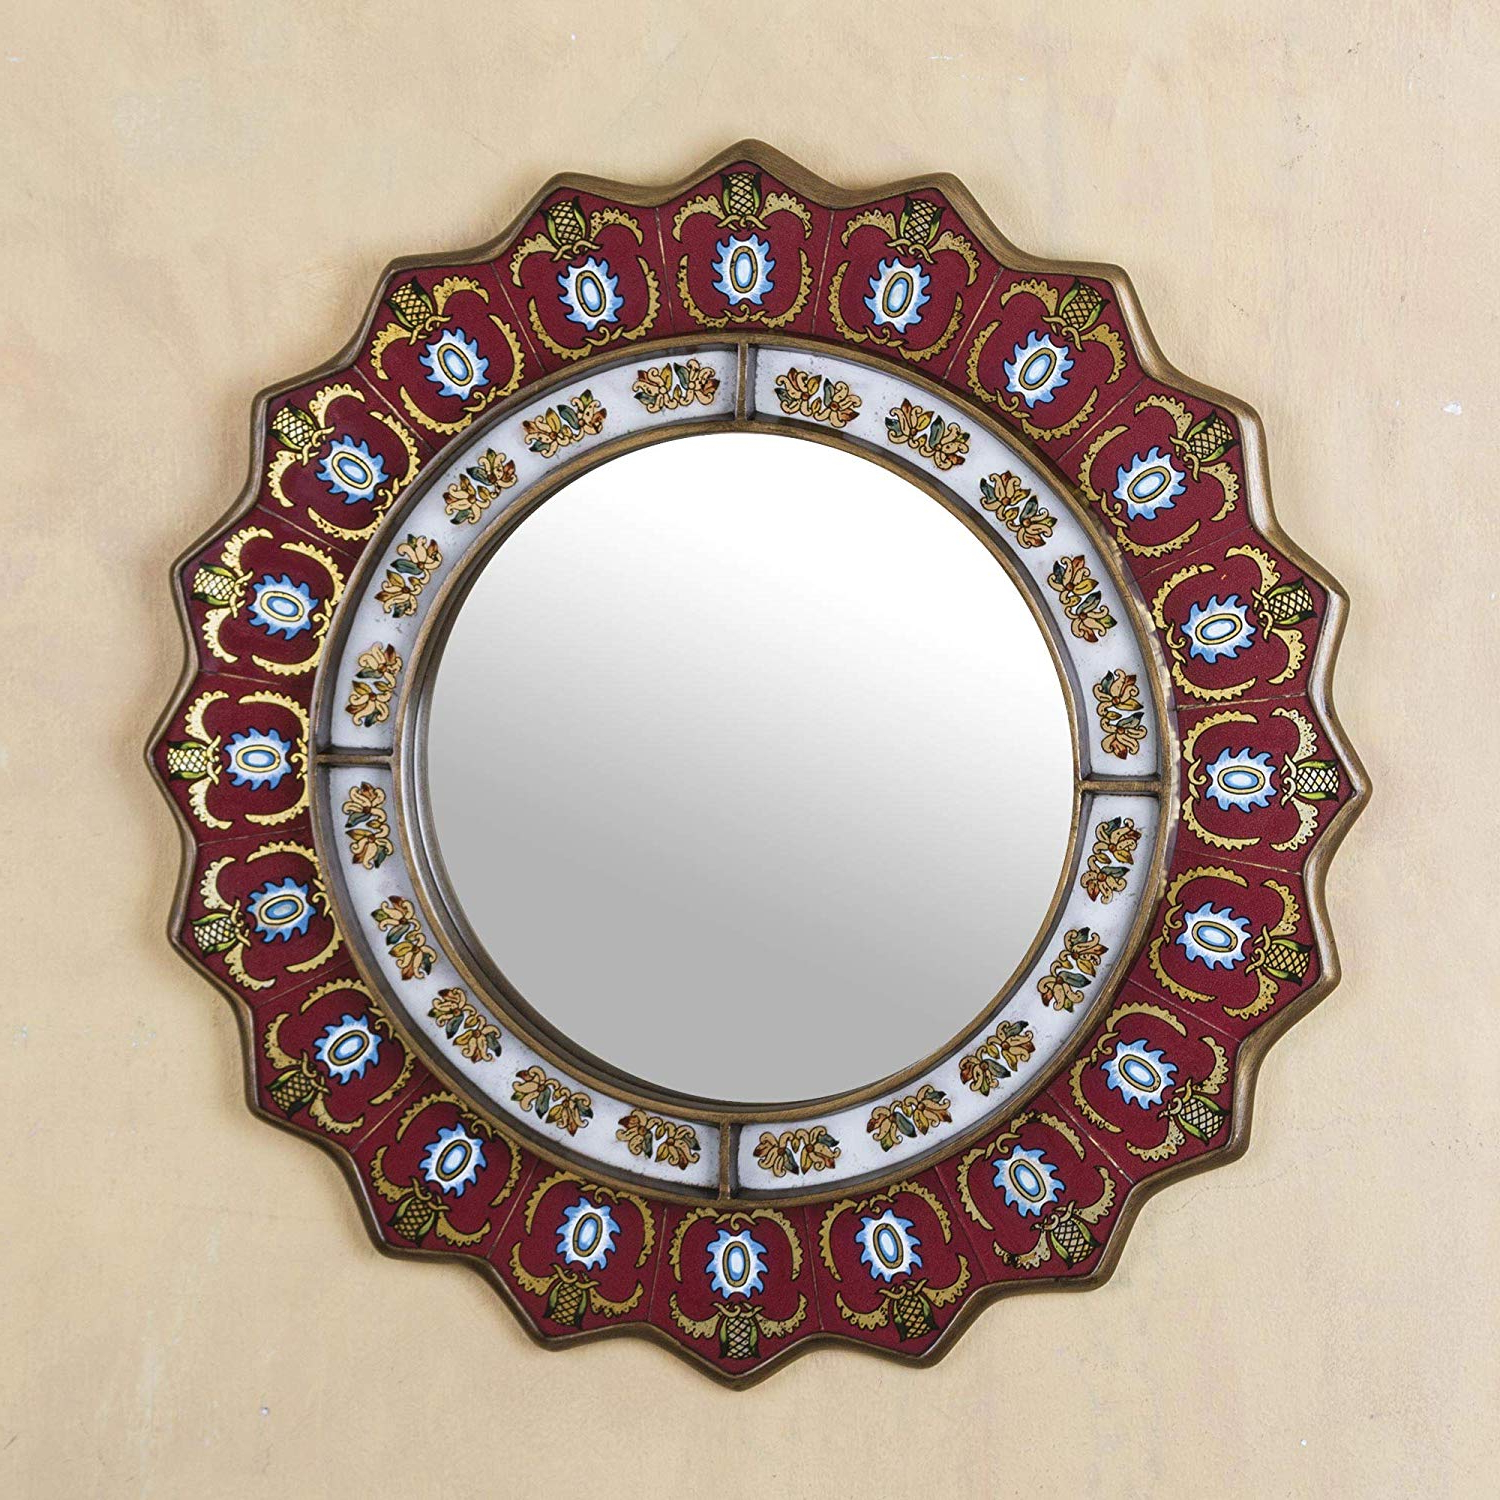 Medallion Accent Mirrors Throughout Favorite Novica Mi0006 Red Reverse Painted Glass Wood Framed Decorative Star Wall Mirror From Peru 'ruby Medallion' (large) (View 9 of 20)